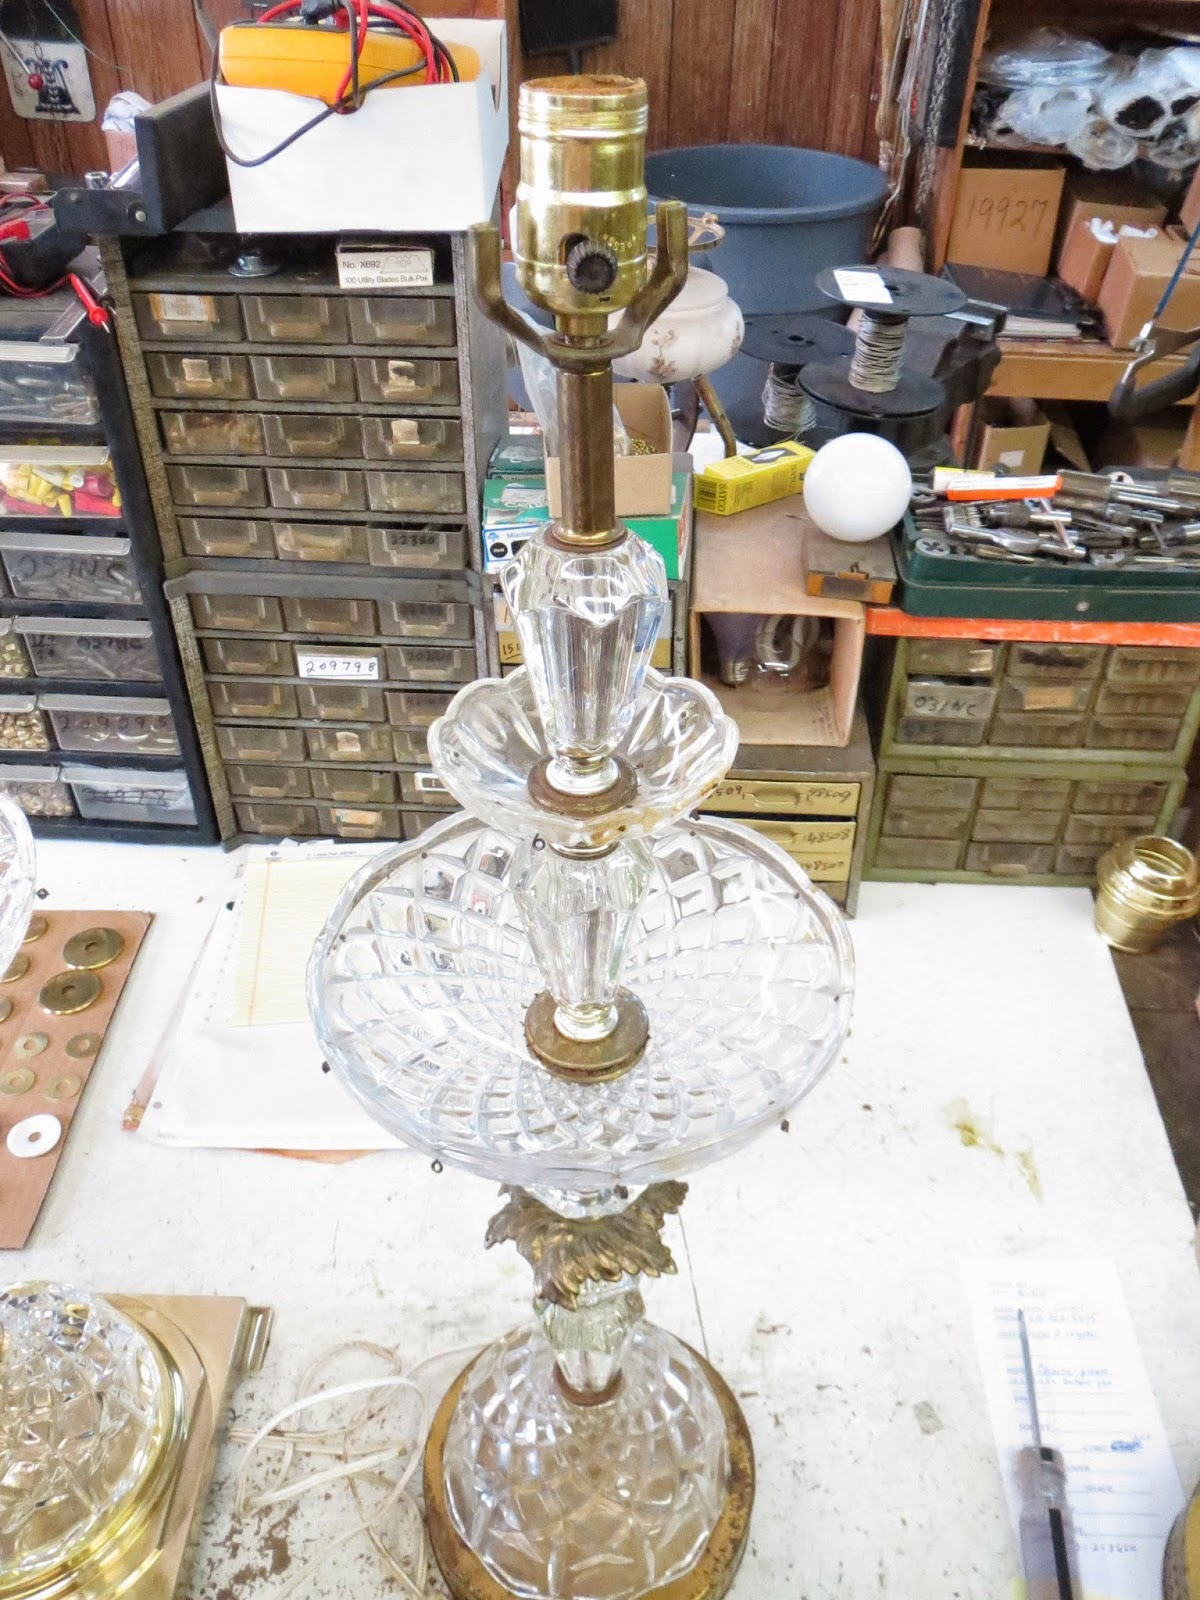 The Lamp Parts Needed For This Project Include Many Different Seating  Rings, Felt Washers, Rubber Washers, Brass Breaks, Brass Necks, Brass Base,  Harp Base, ...